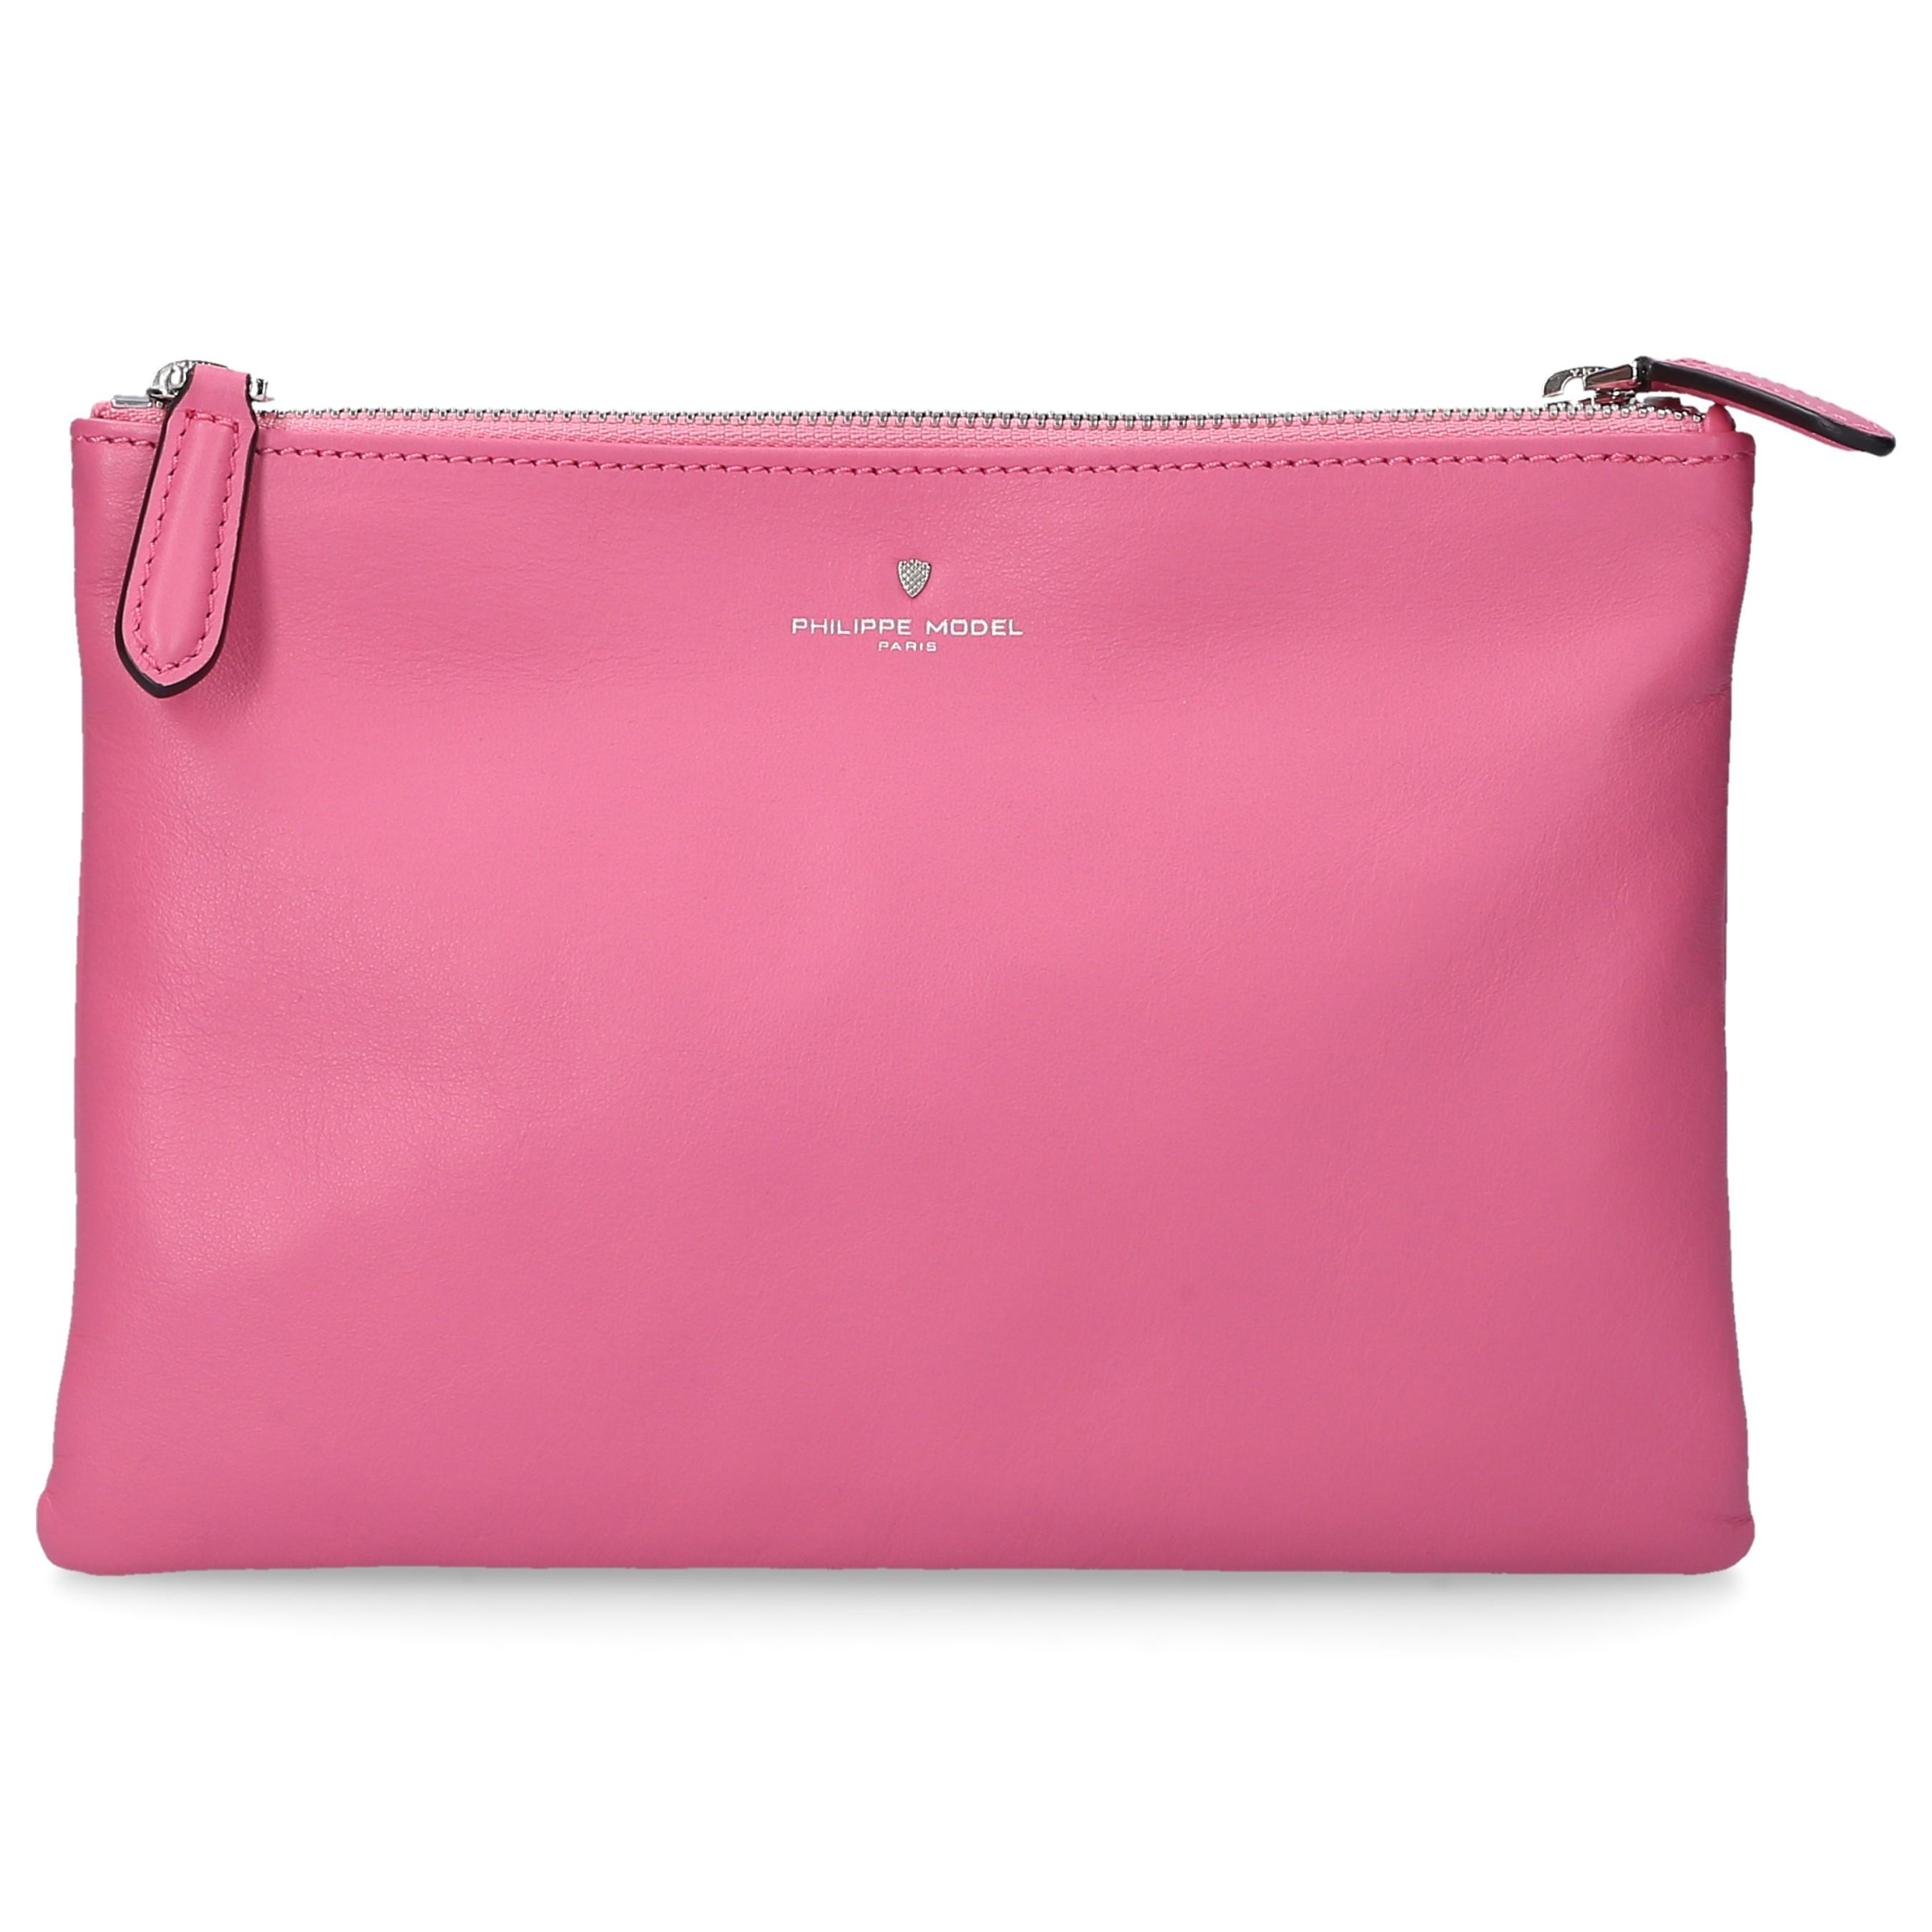 833d0c81e3fbf Philippe Model Handbag Cholet Leather Logo Pink in Pink - Lyst